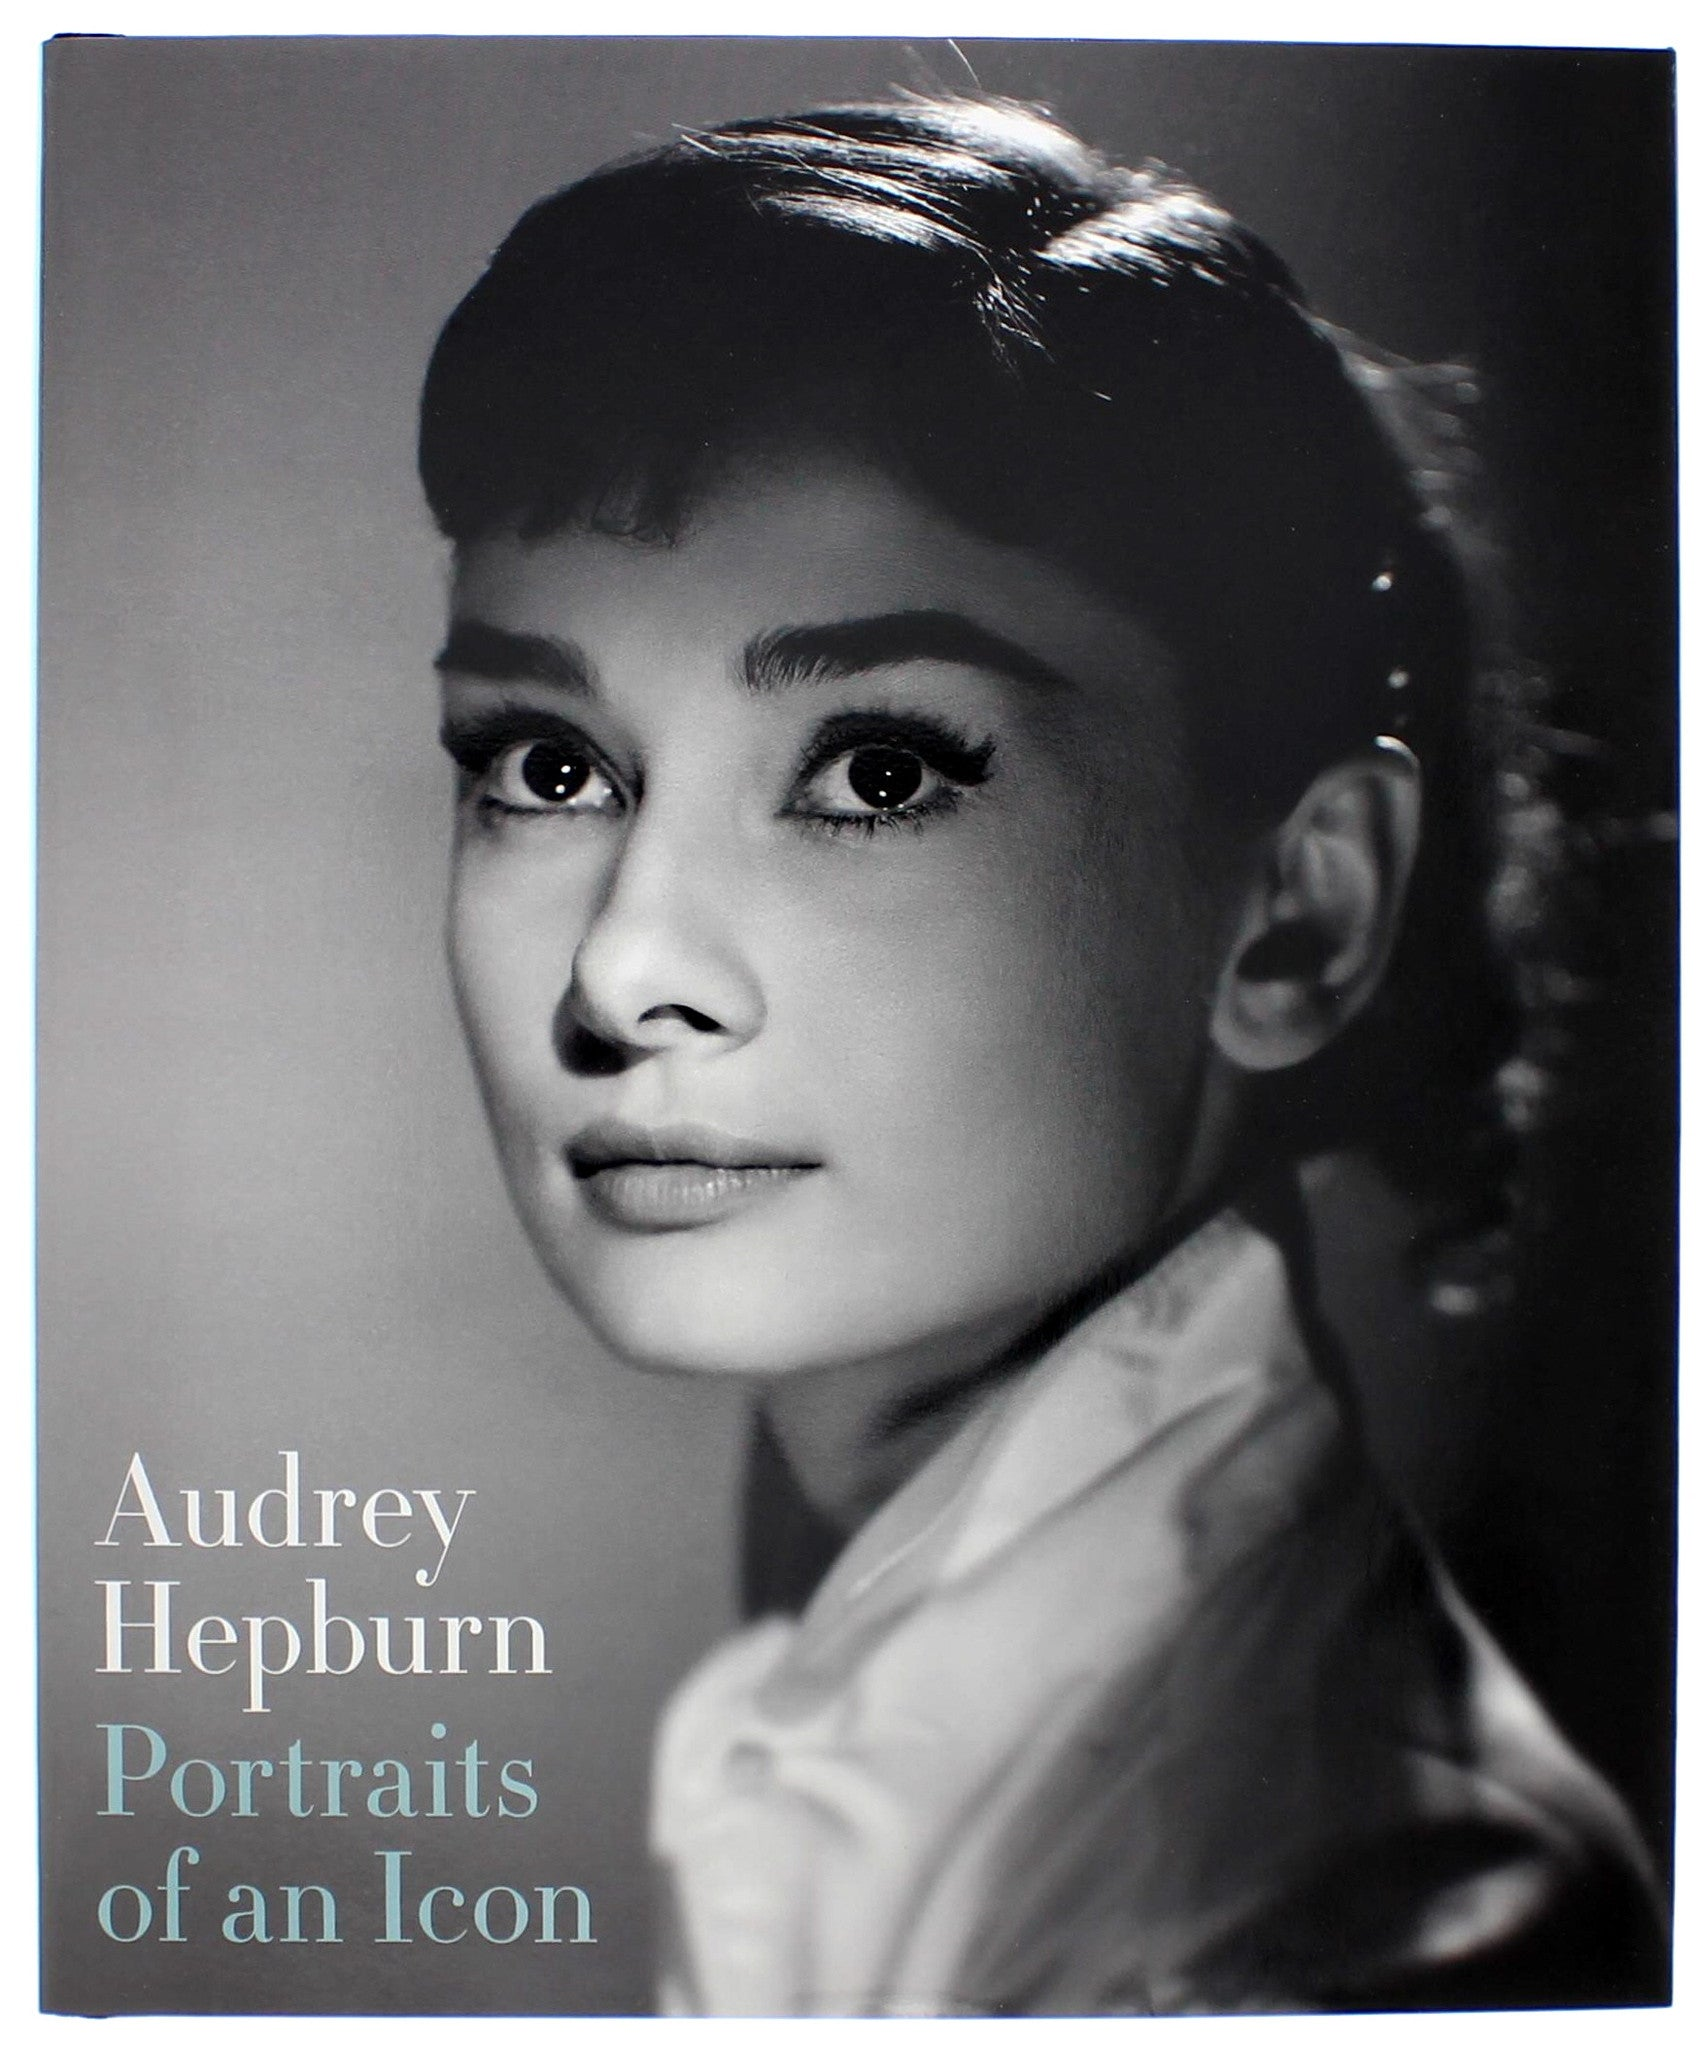 Audrey Hepburn: Portraits of an Icon Hardcover